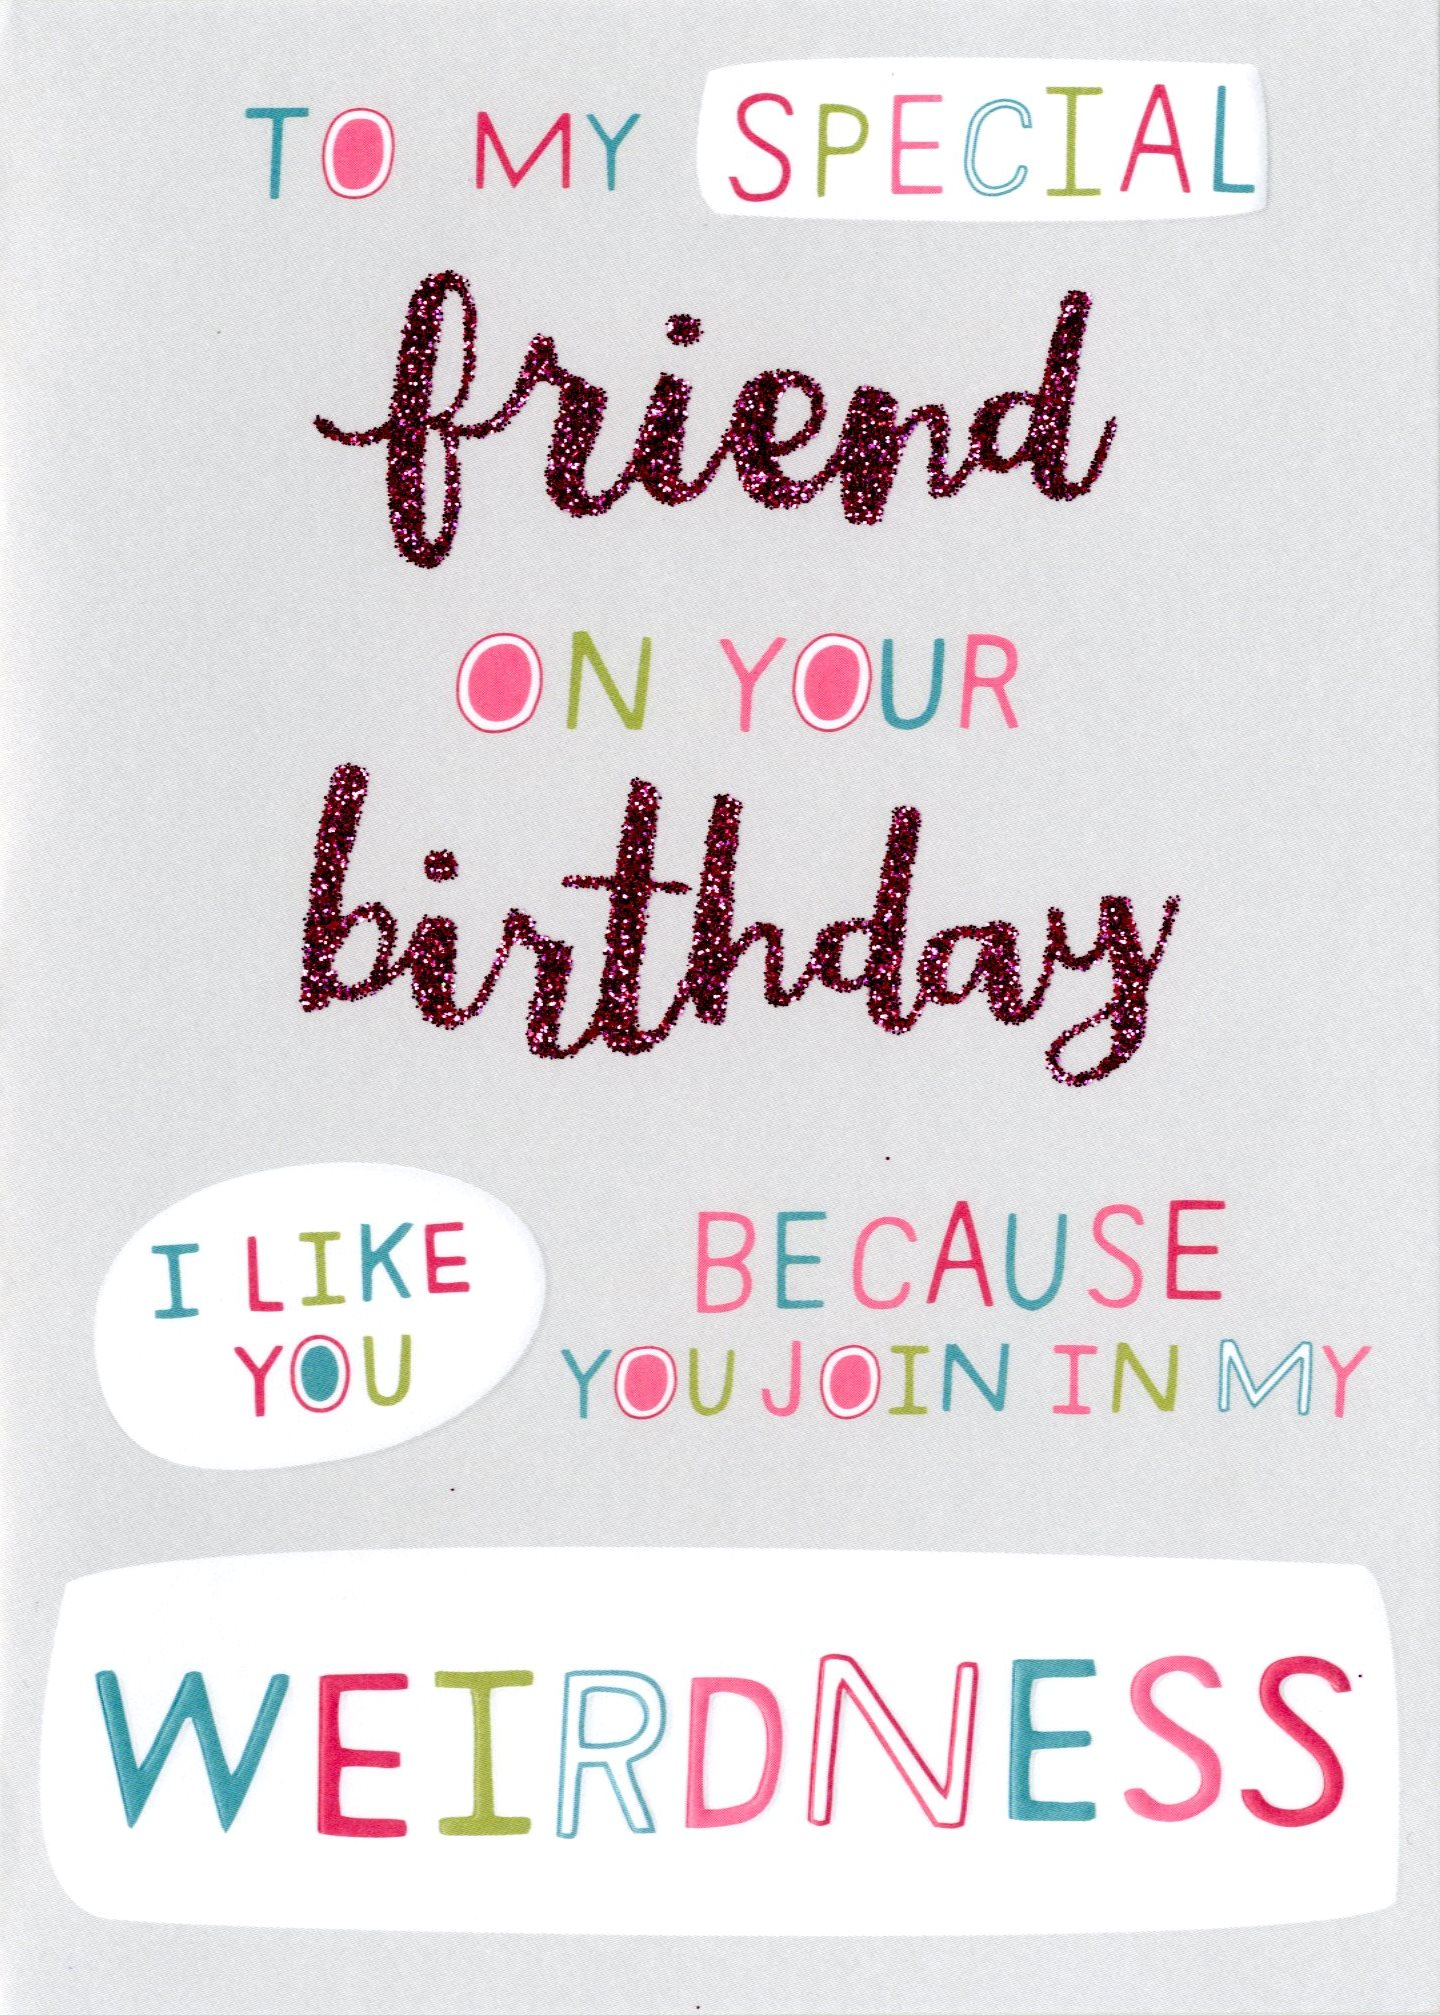 Special weird friend birthday card cards love kates special weird friend birthday card bookmarktalkfo Image collections